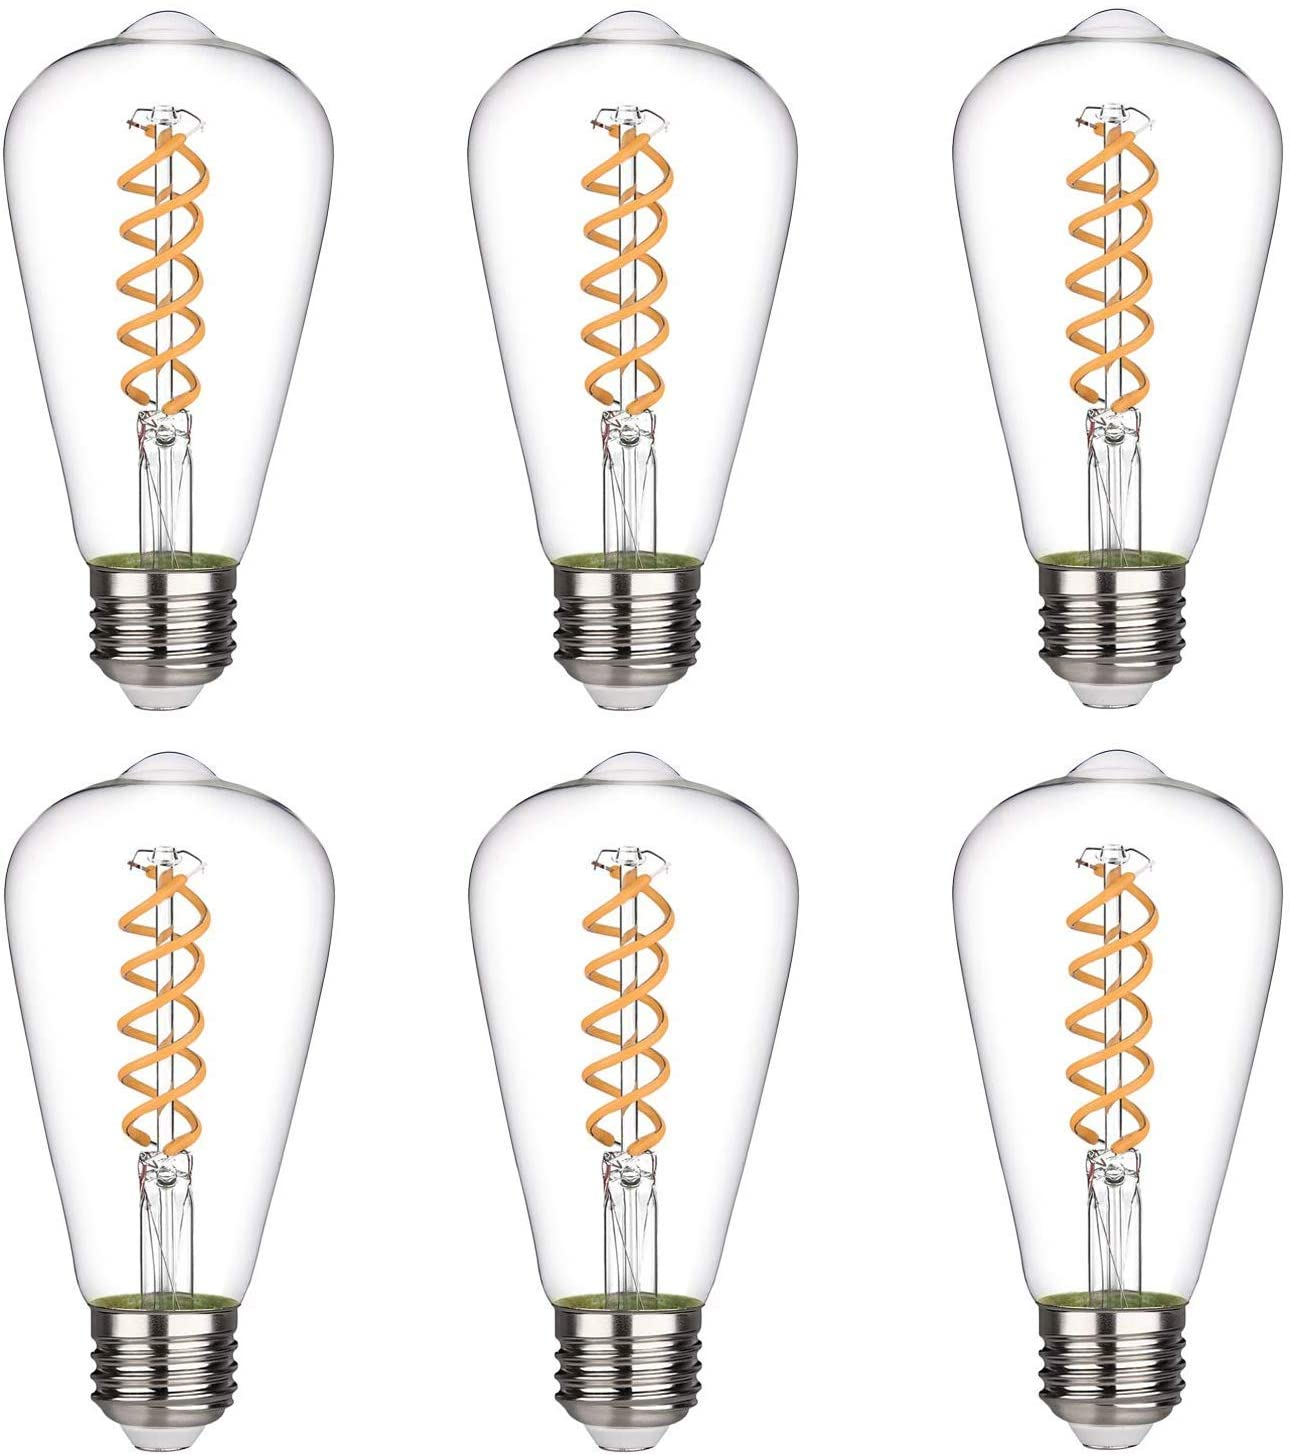 Emitting 4.5W Dimmable 450LM Warm White 2700K, ST21/ST64 Vintage Edison LED Bulb, Antique LED Filament Light Bulb, 50W Equivalent, E26 Base, Clear Glass (4.5W-2700K-6 Pack)